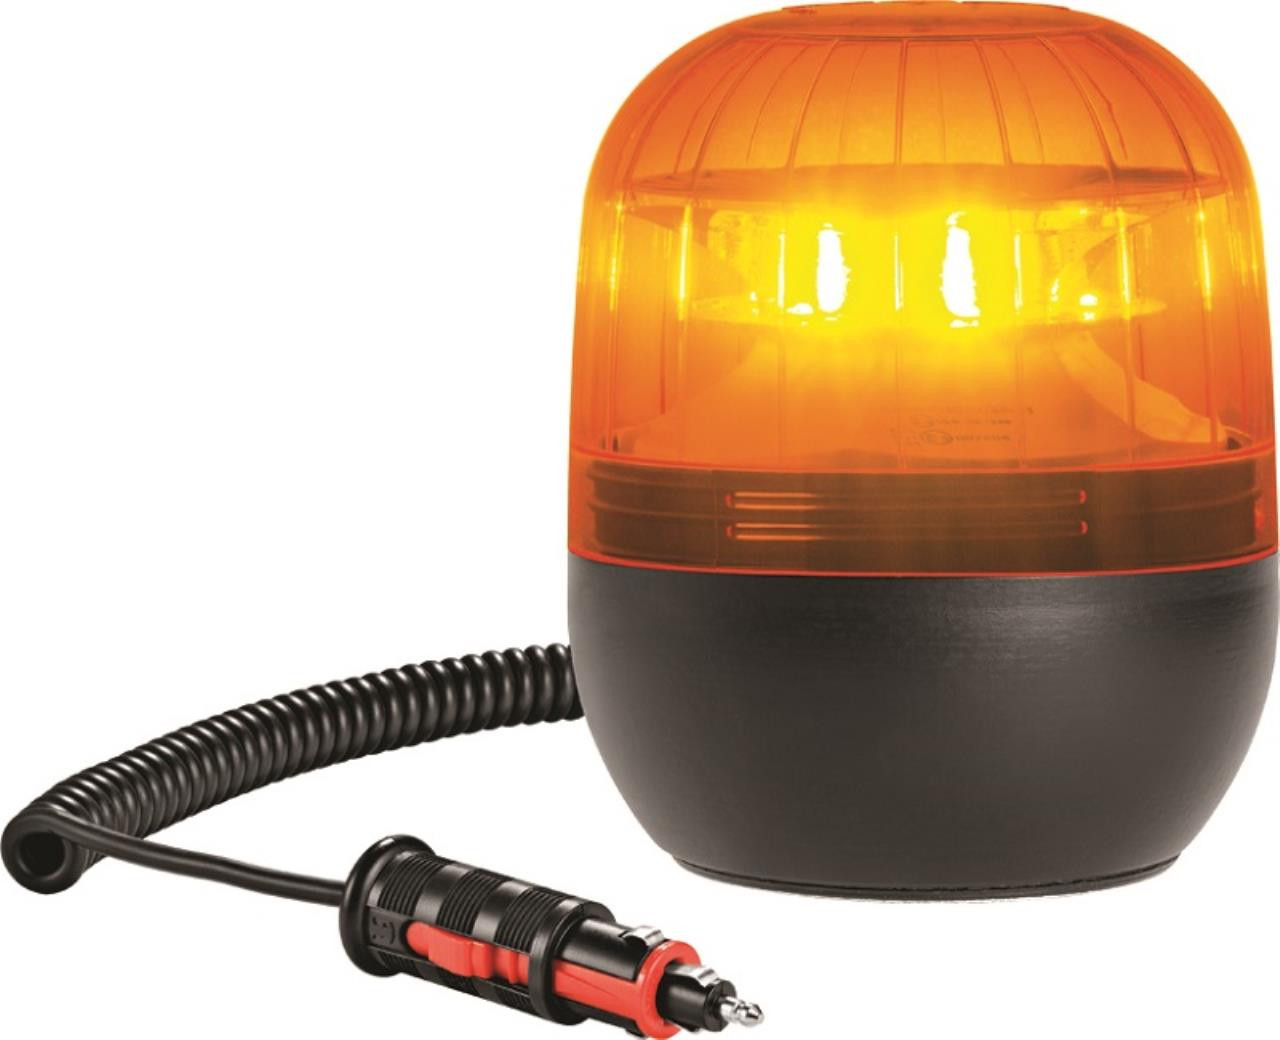 New Holland rotorblink LED 12-24V magnet